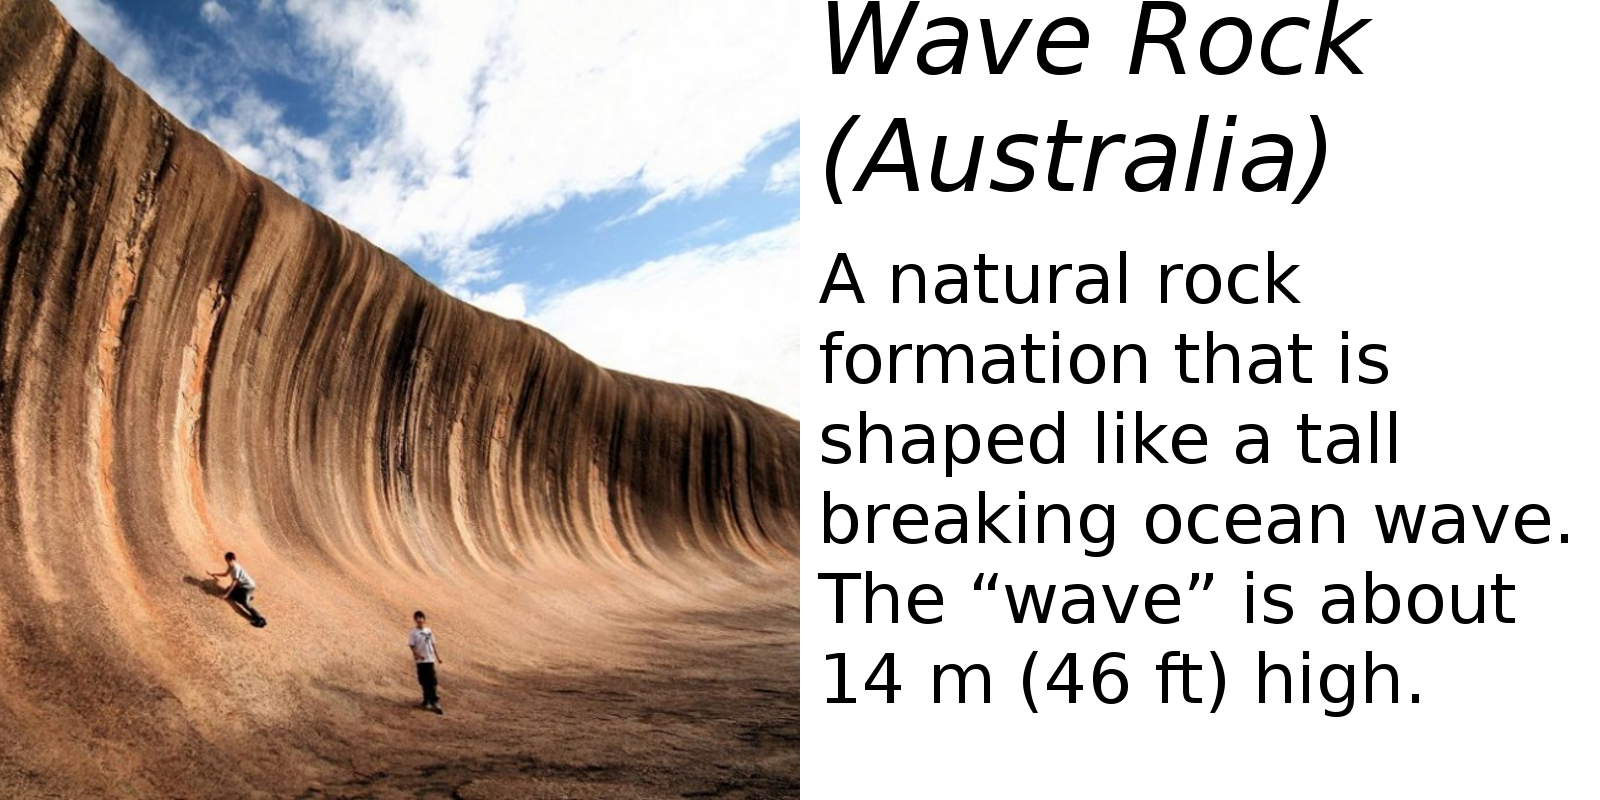 Wave Rock (description) #2